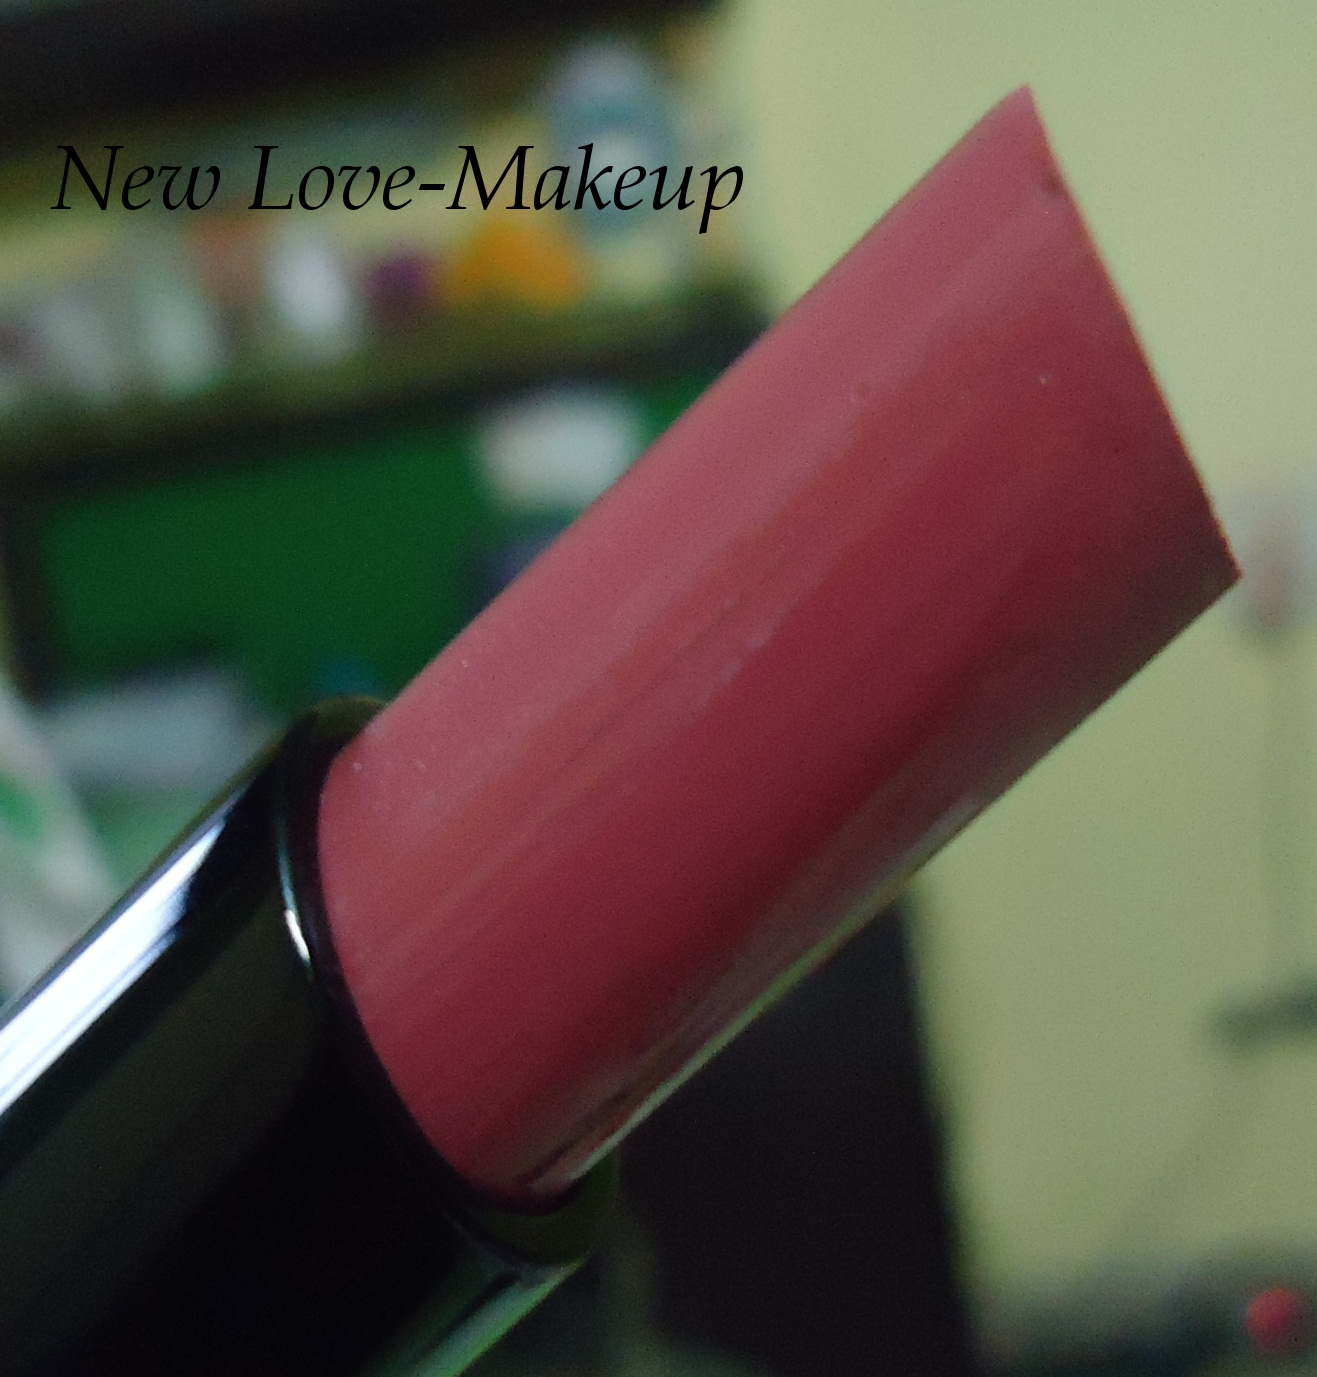 Bobbi Brown Creamy Lip Color Review, Swatches, Fotd  New -4332